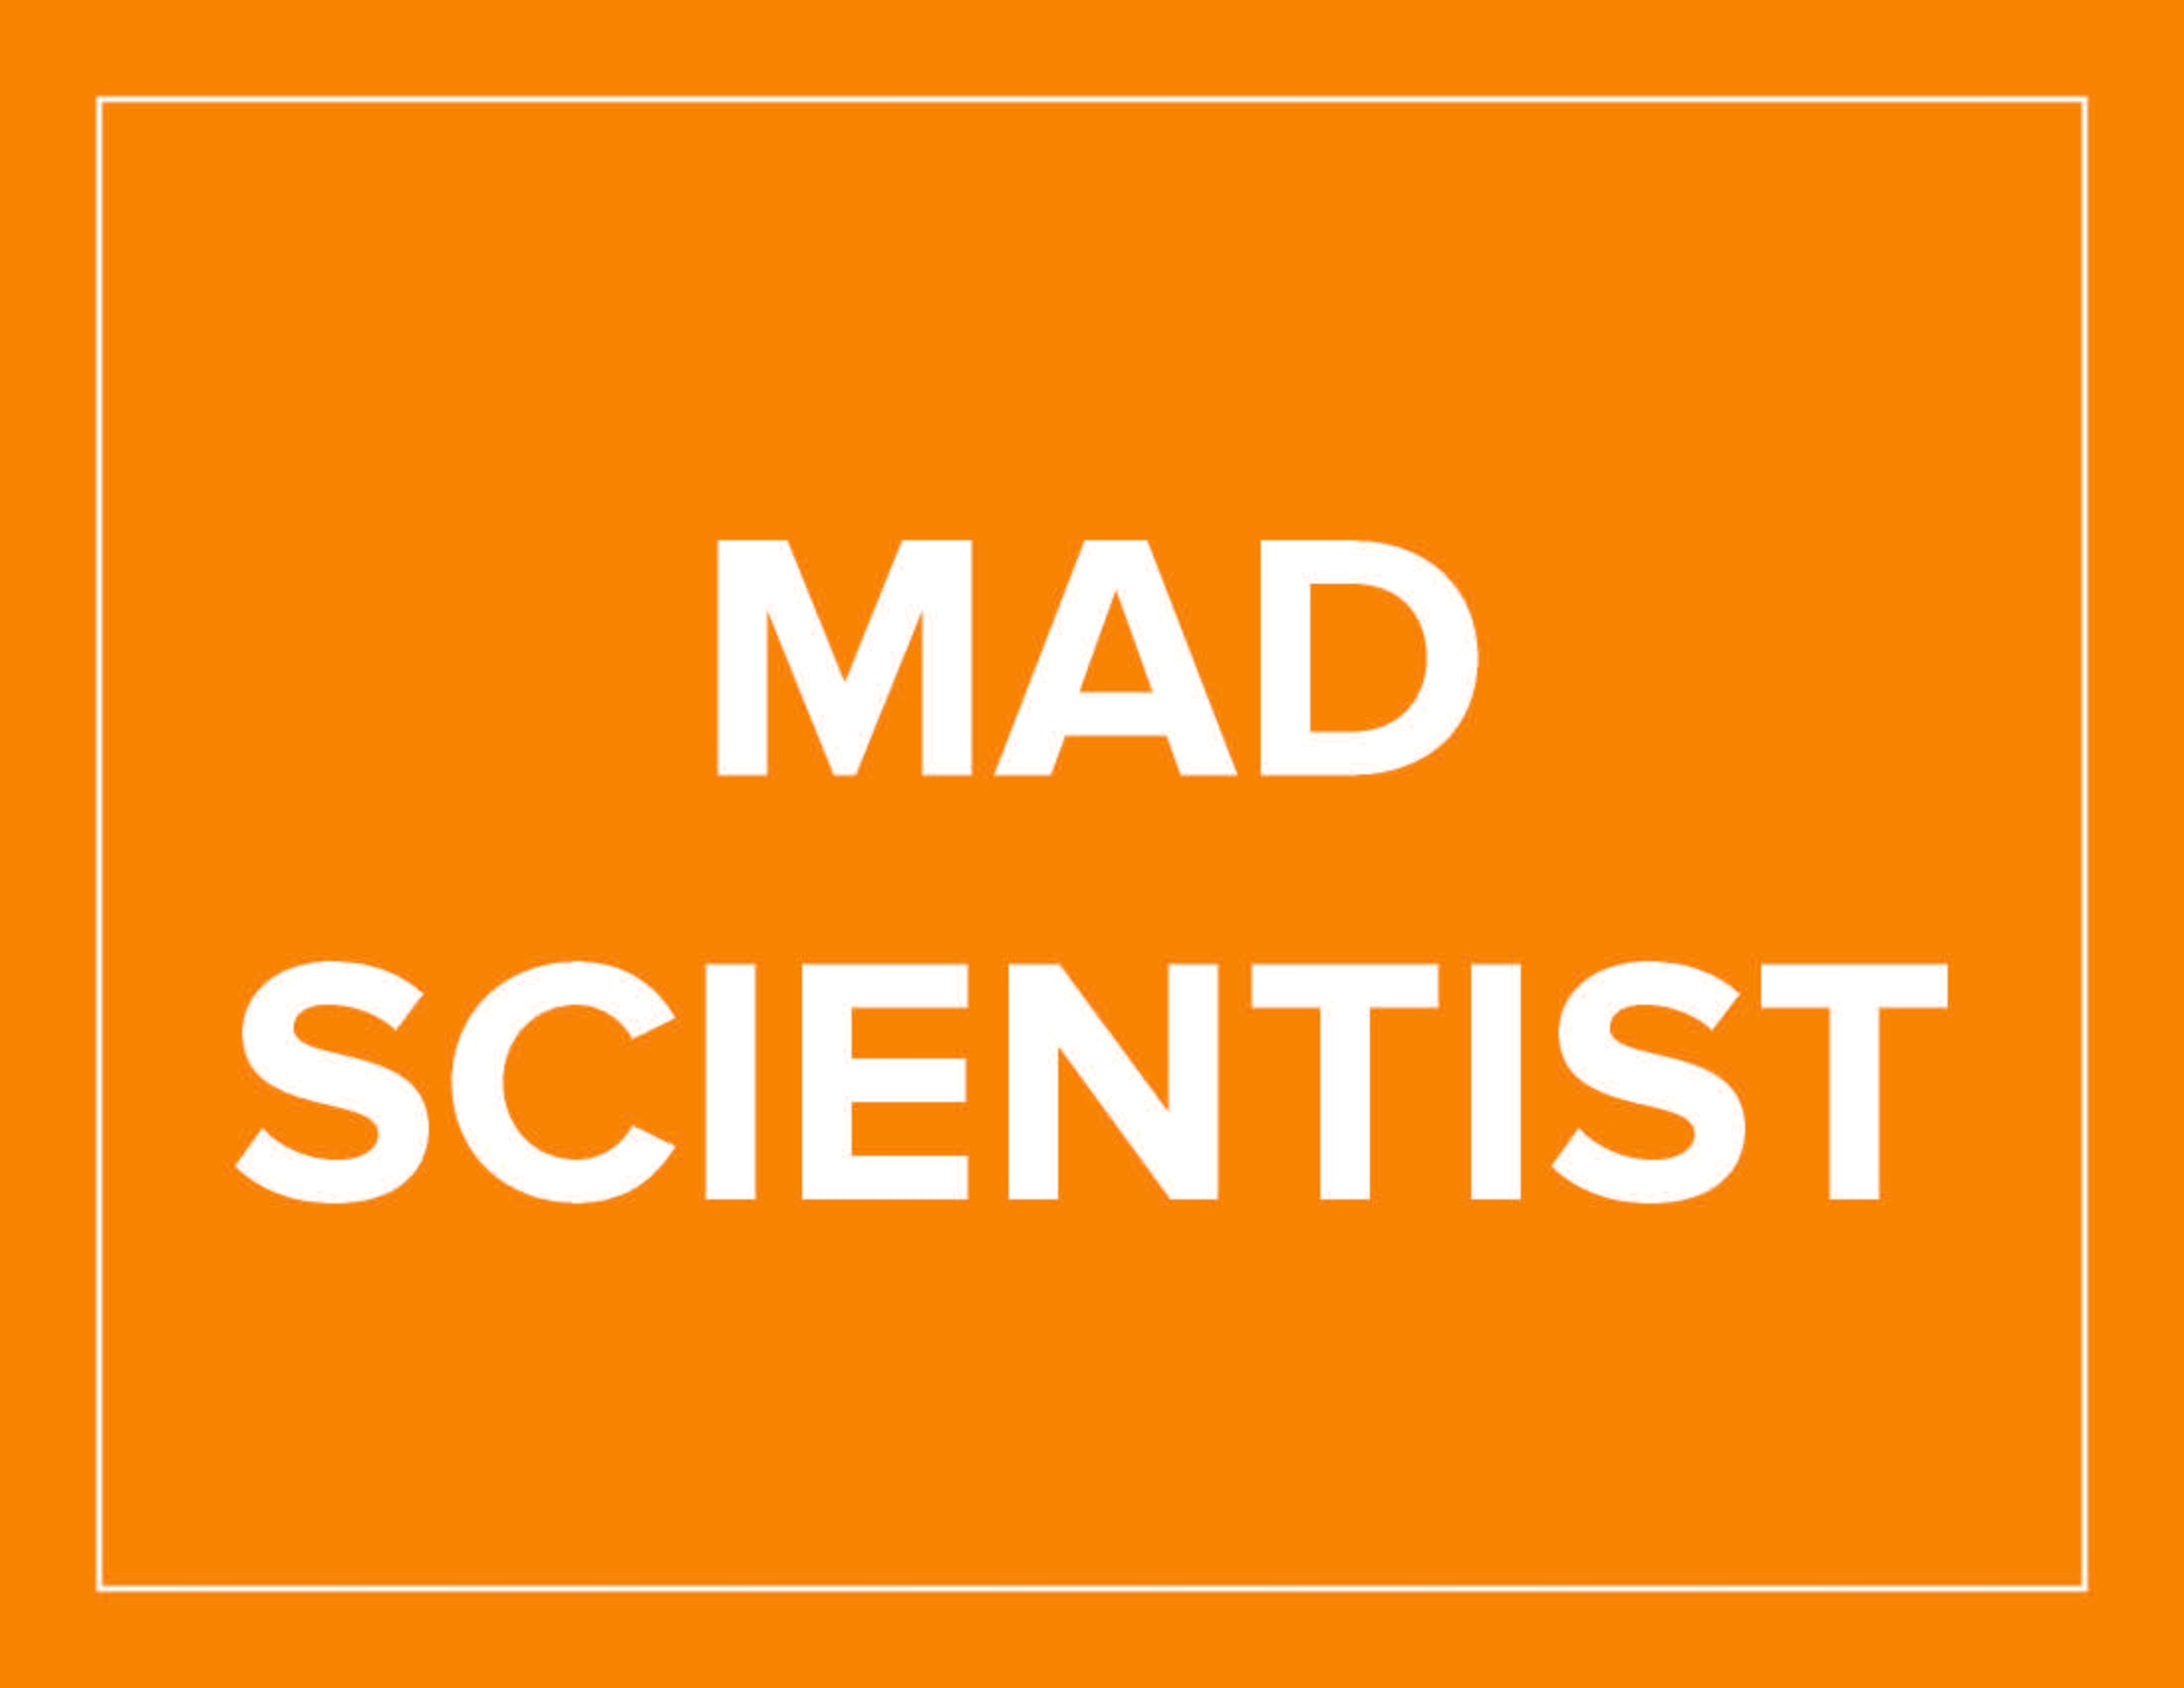 Mad Scientist July 26-28 Grades 1 - 4